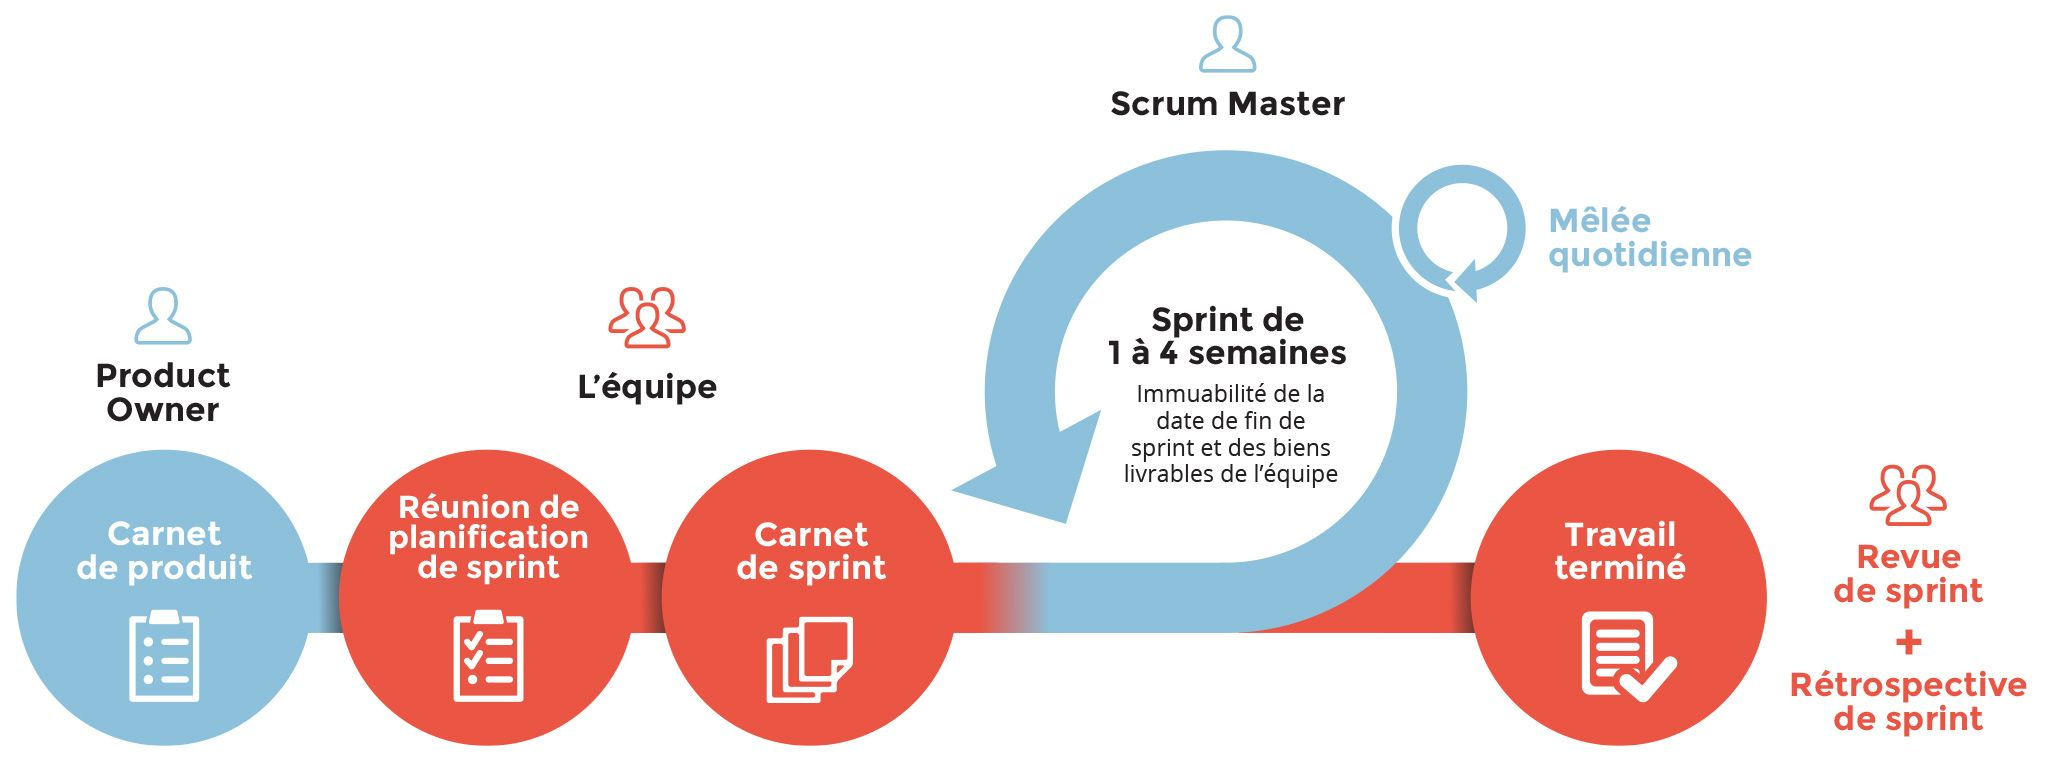 Méthode SCRUM. Product owner, backlog, équipe, sprint, scrum master.